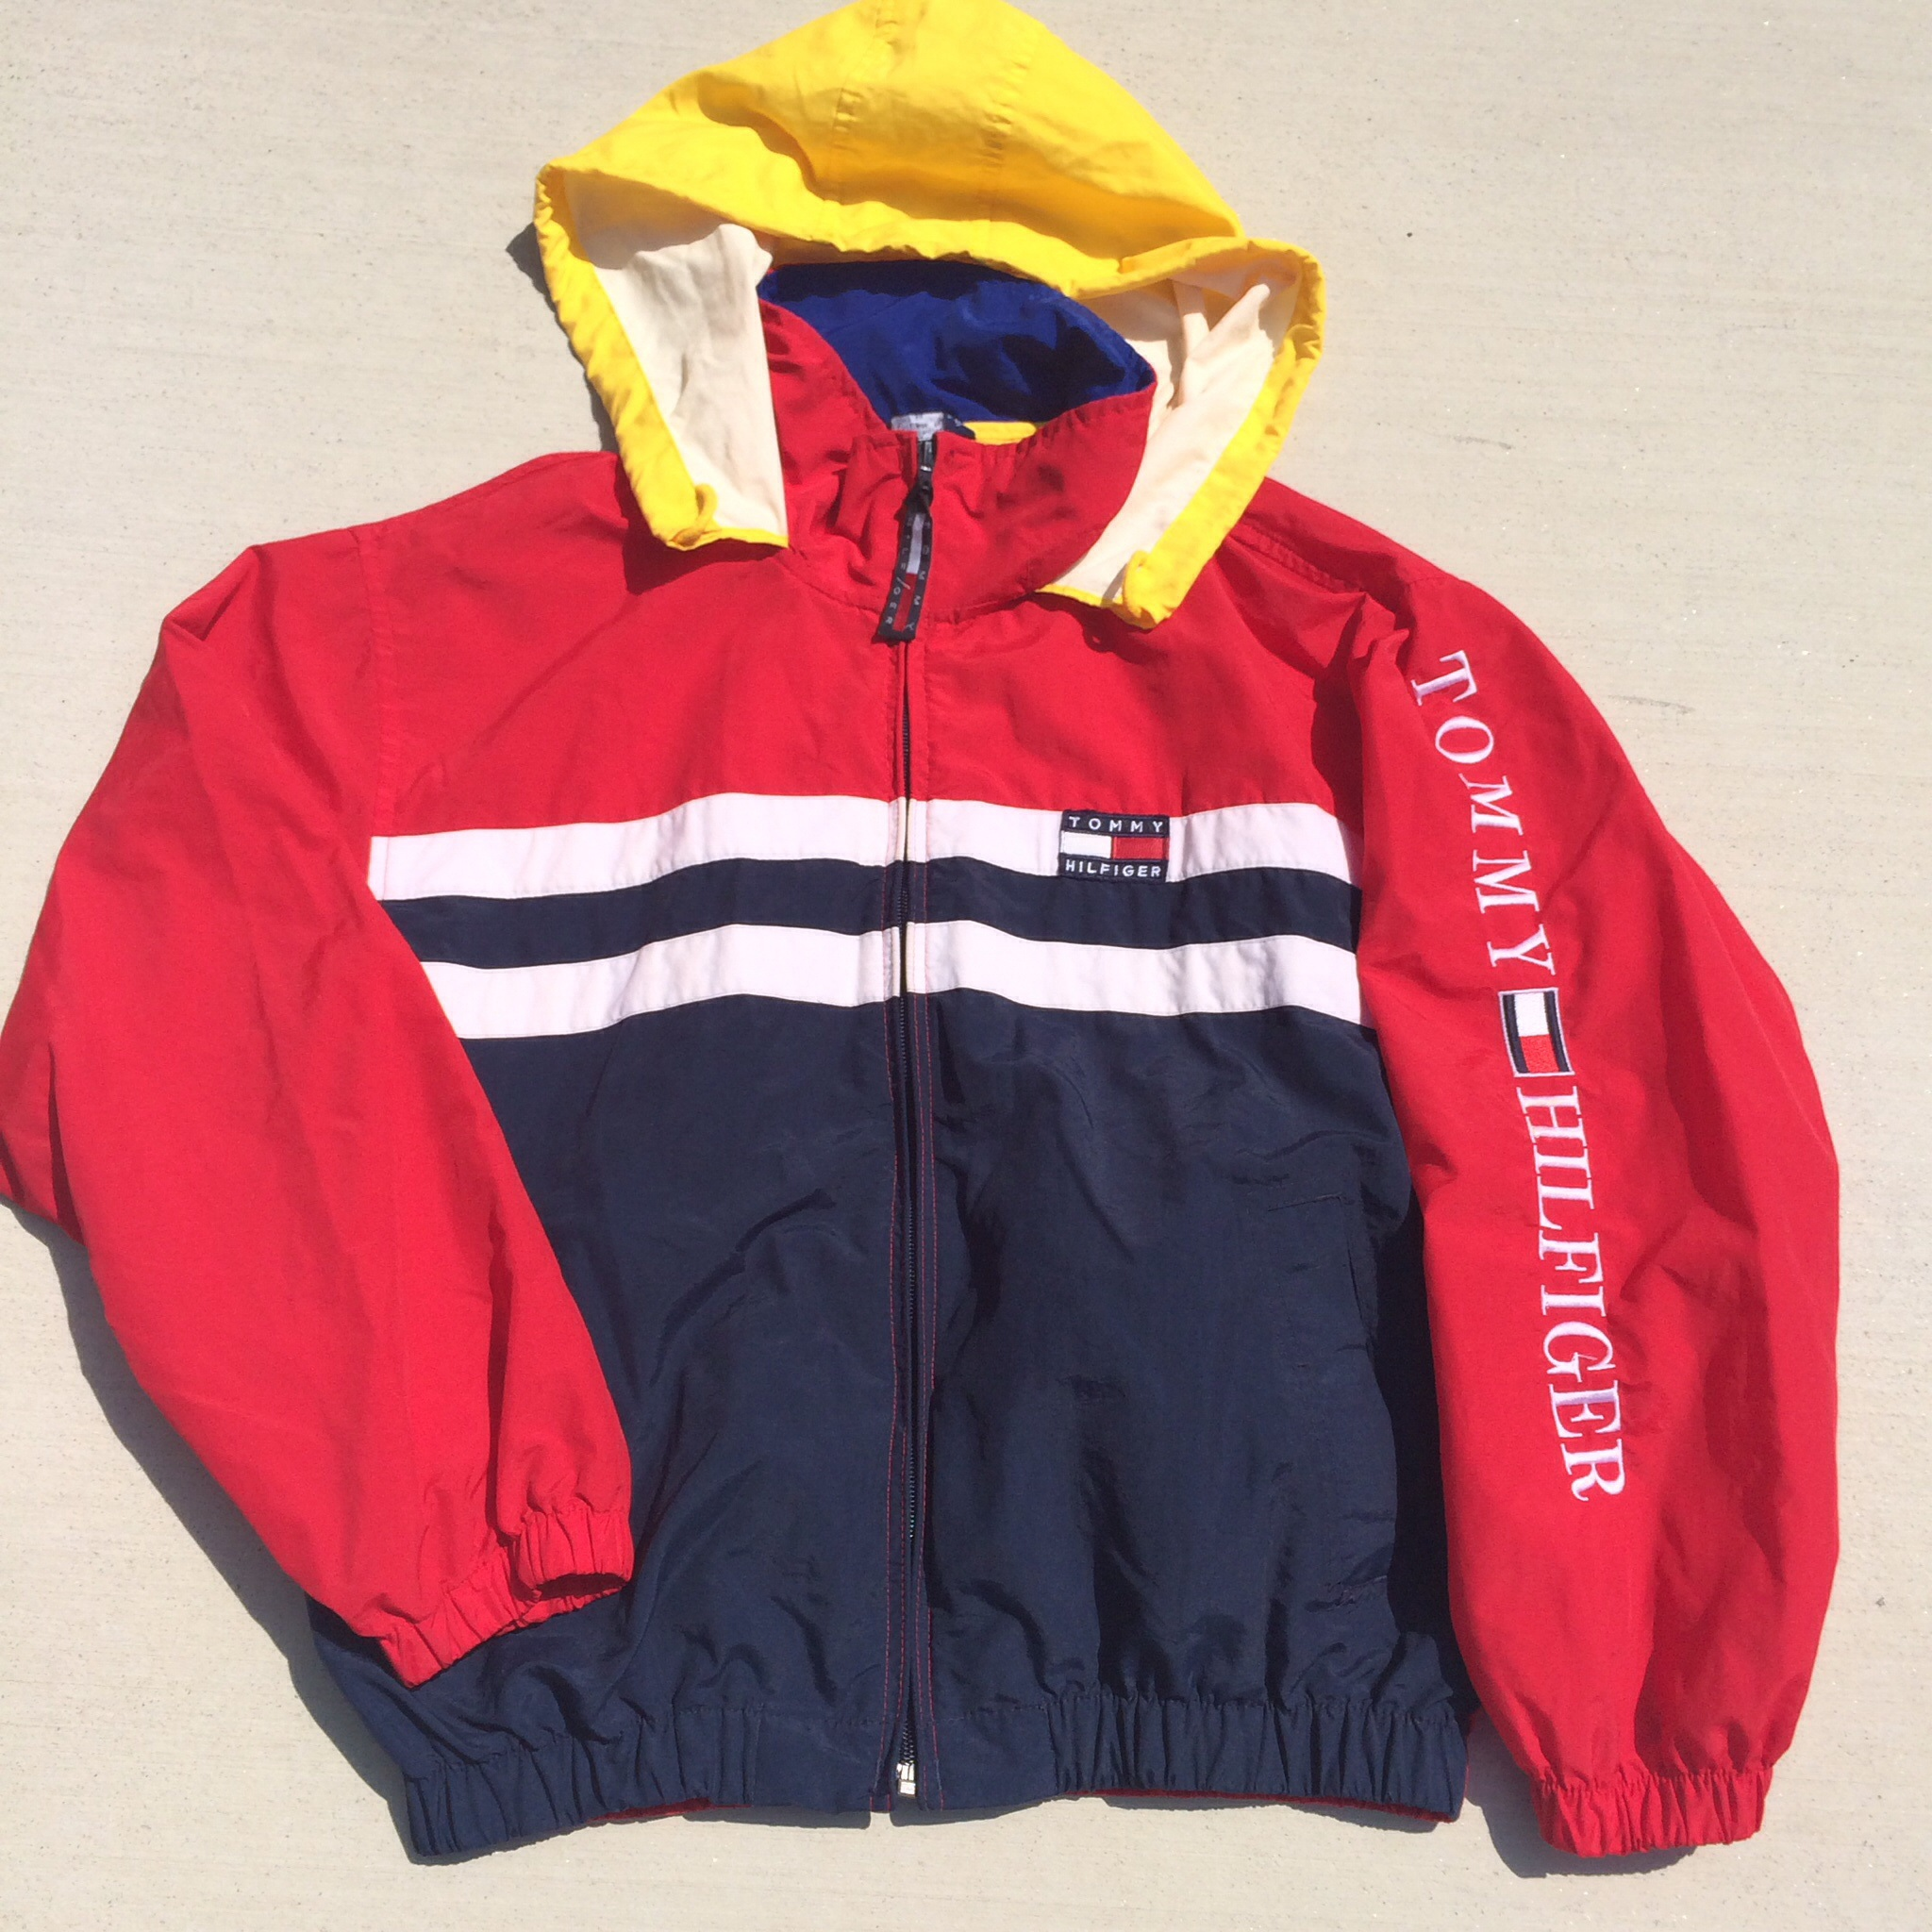 how to tell if original tommy hilfiger